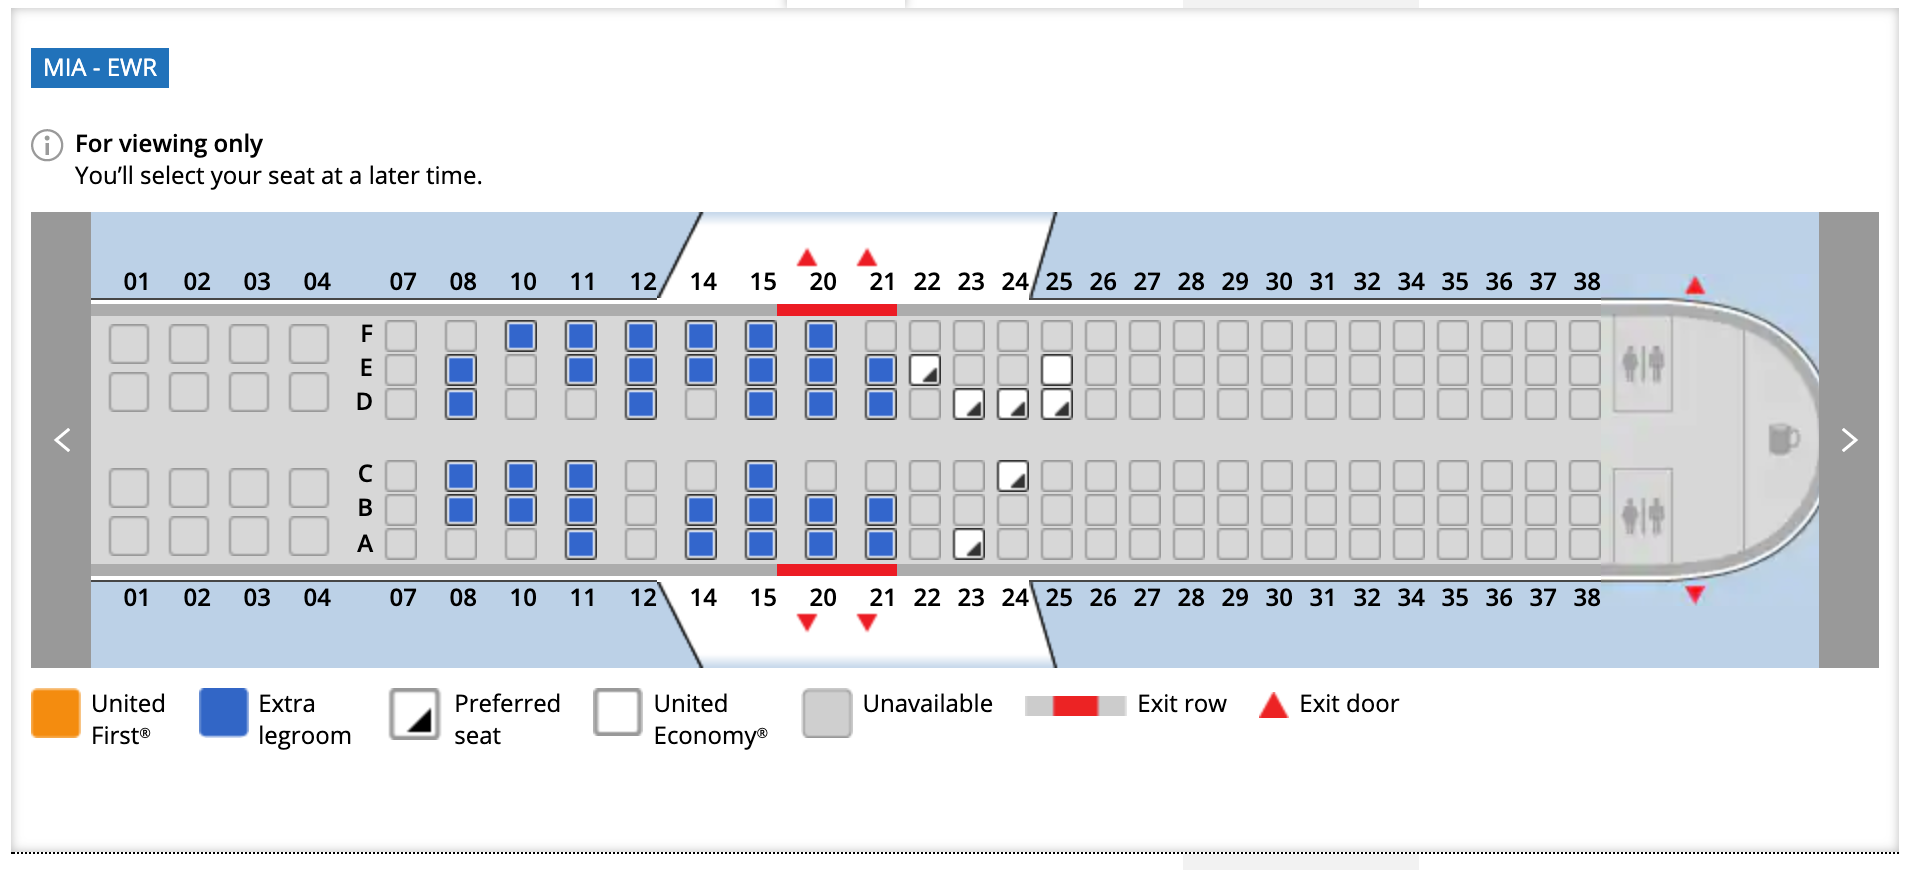 Miami to Newark United Airlines flight seat assignments March 27, 2020